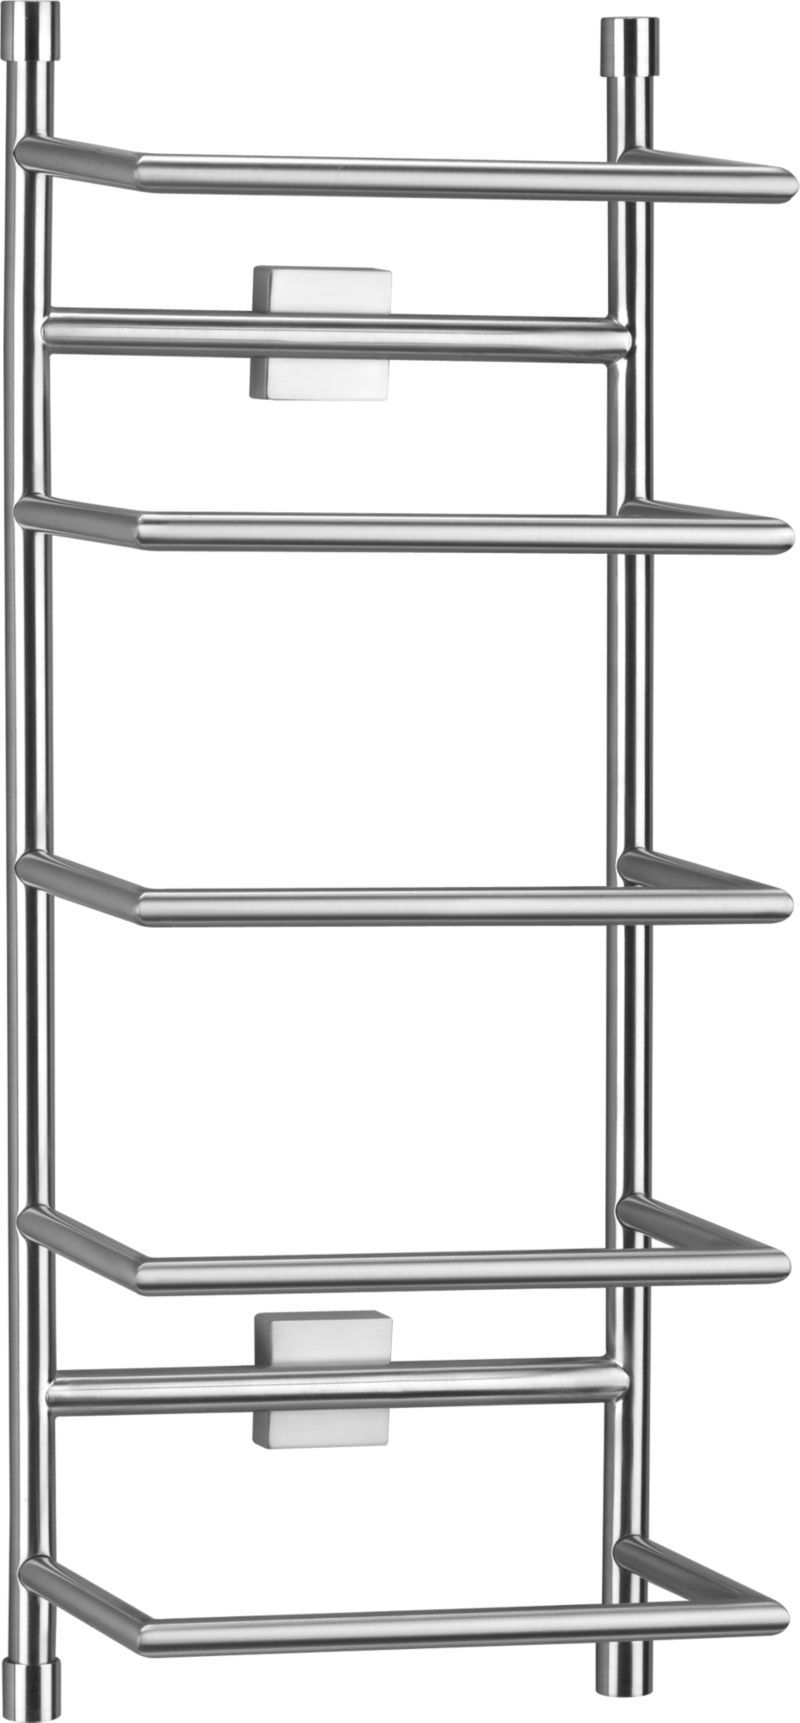 Brushed Steel Wall Mount Towel Rack Steel Wall Towel Rack Towel Rack Bathroom